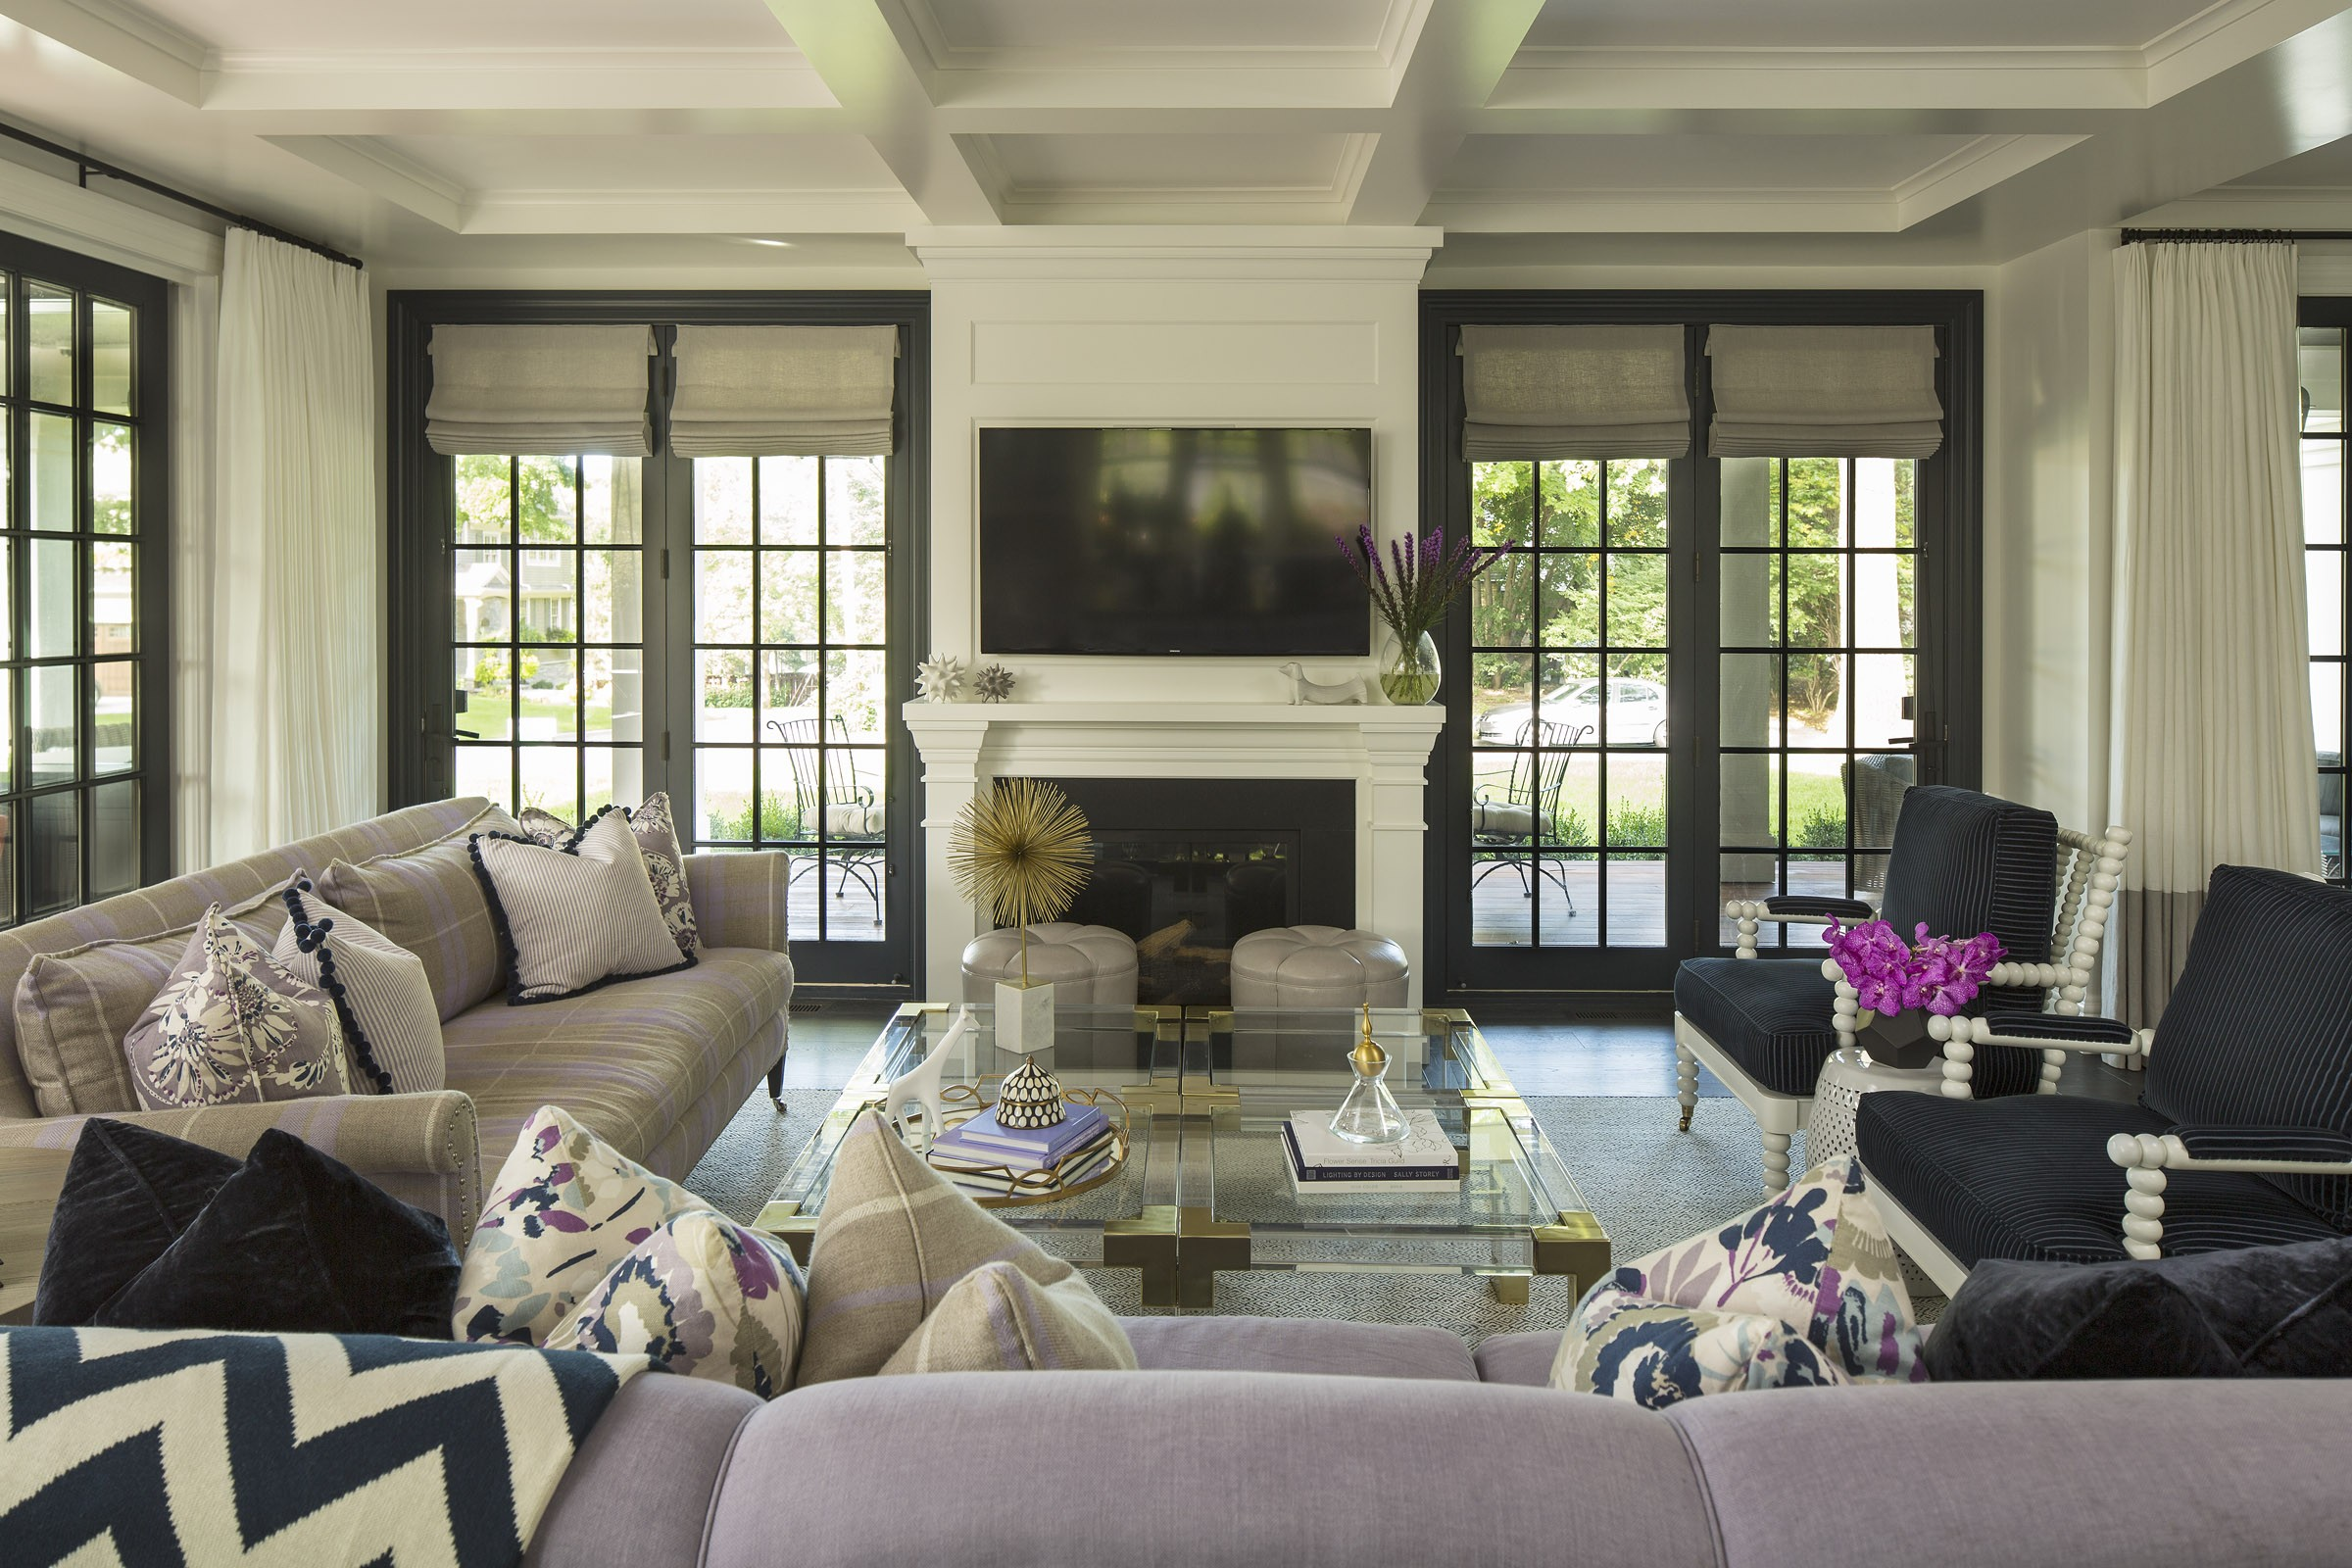 Image source: Martha O'Ohara Interiors